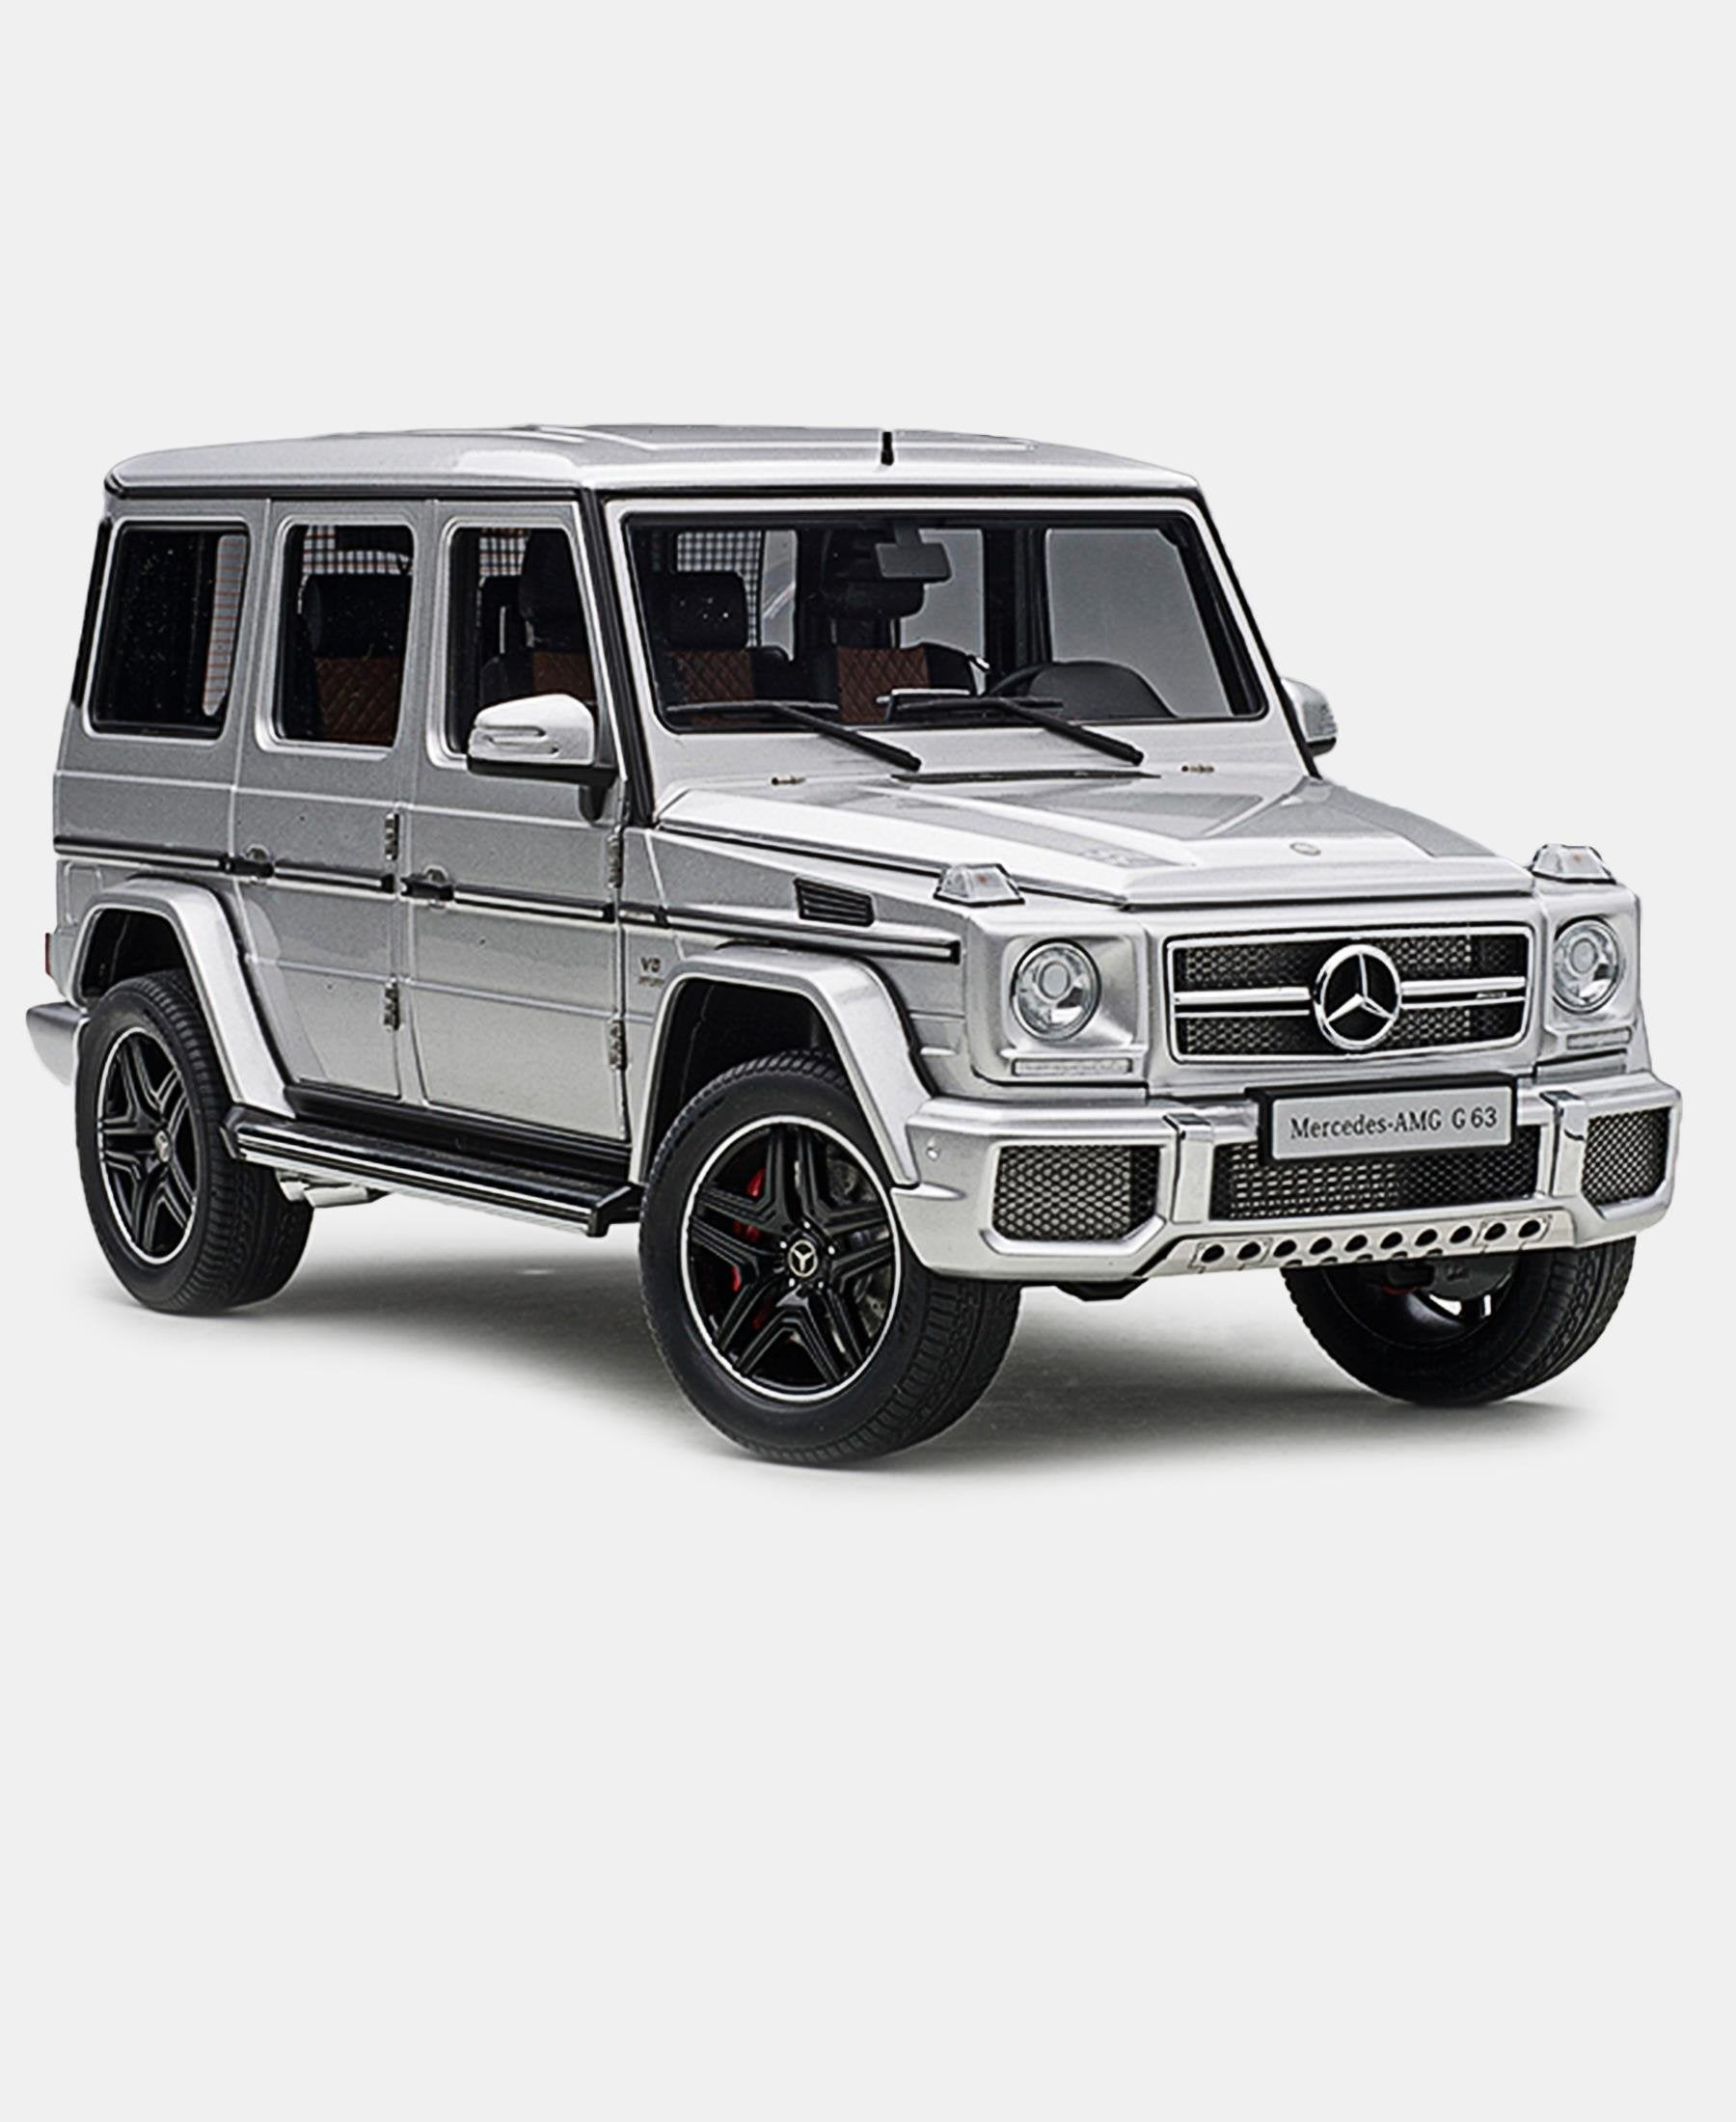 1:18 Die Cast Mercedes AMG G63 2017 Model Car - Silver